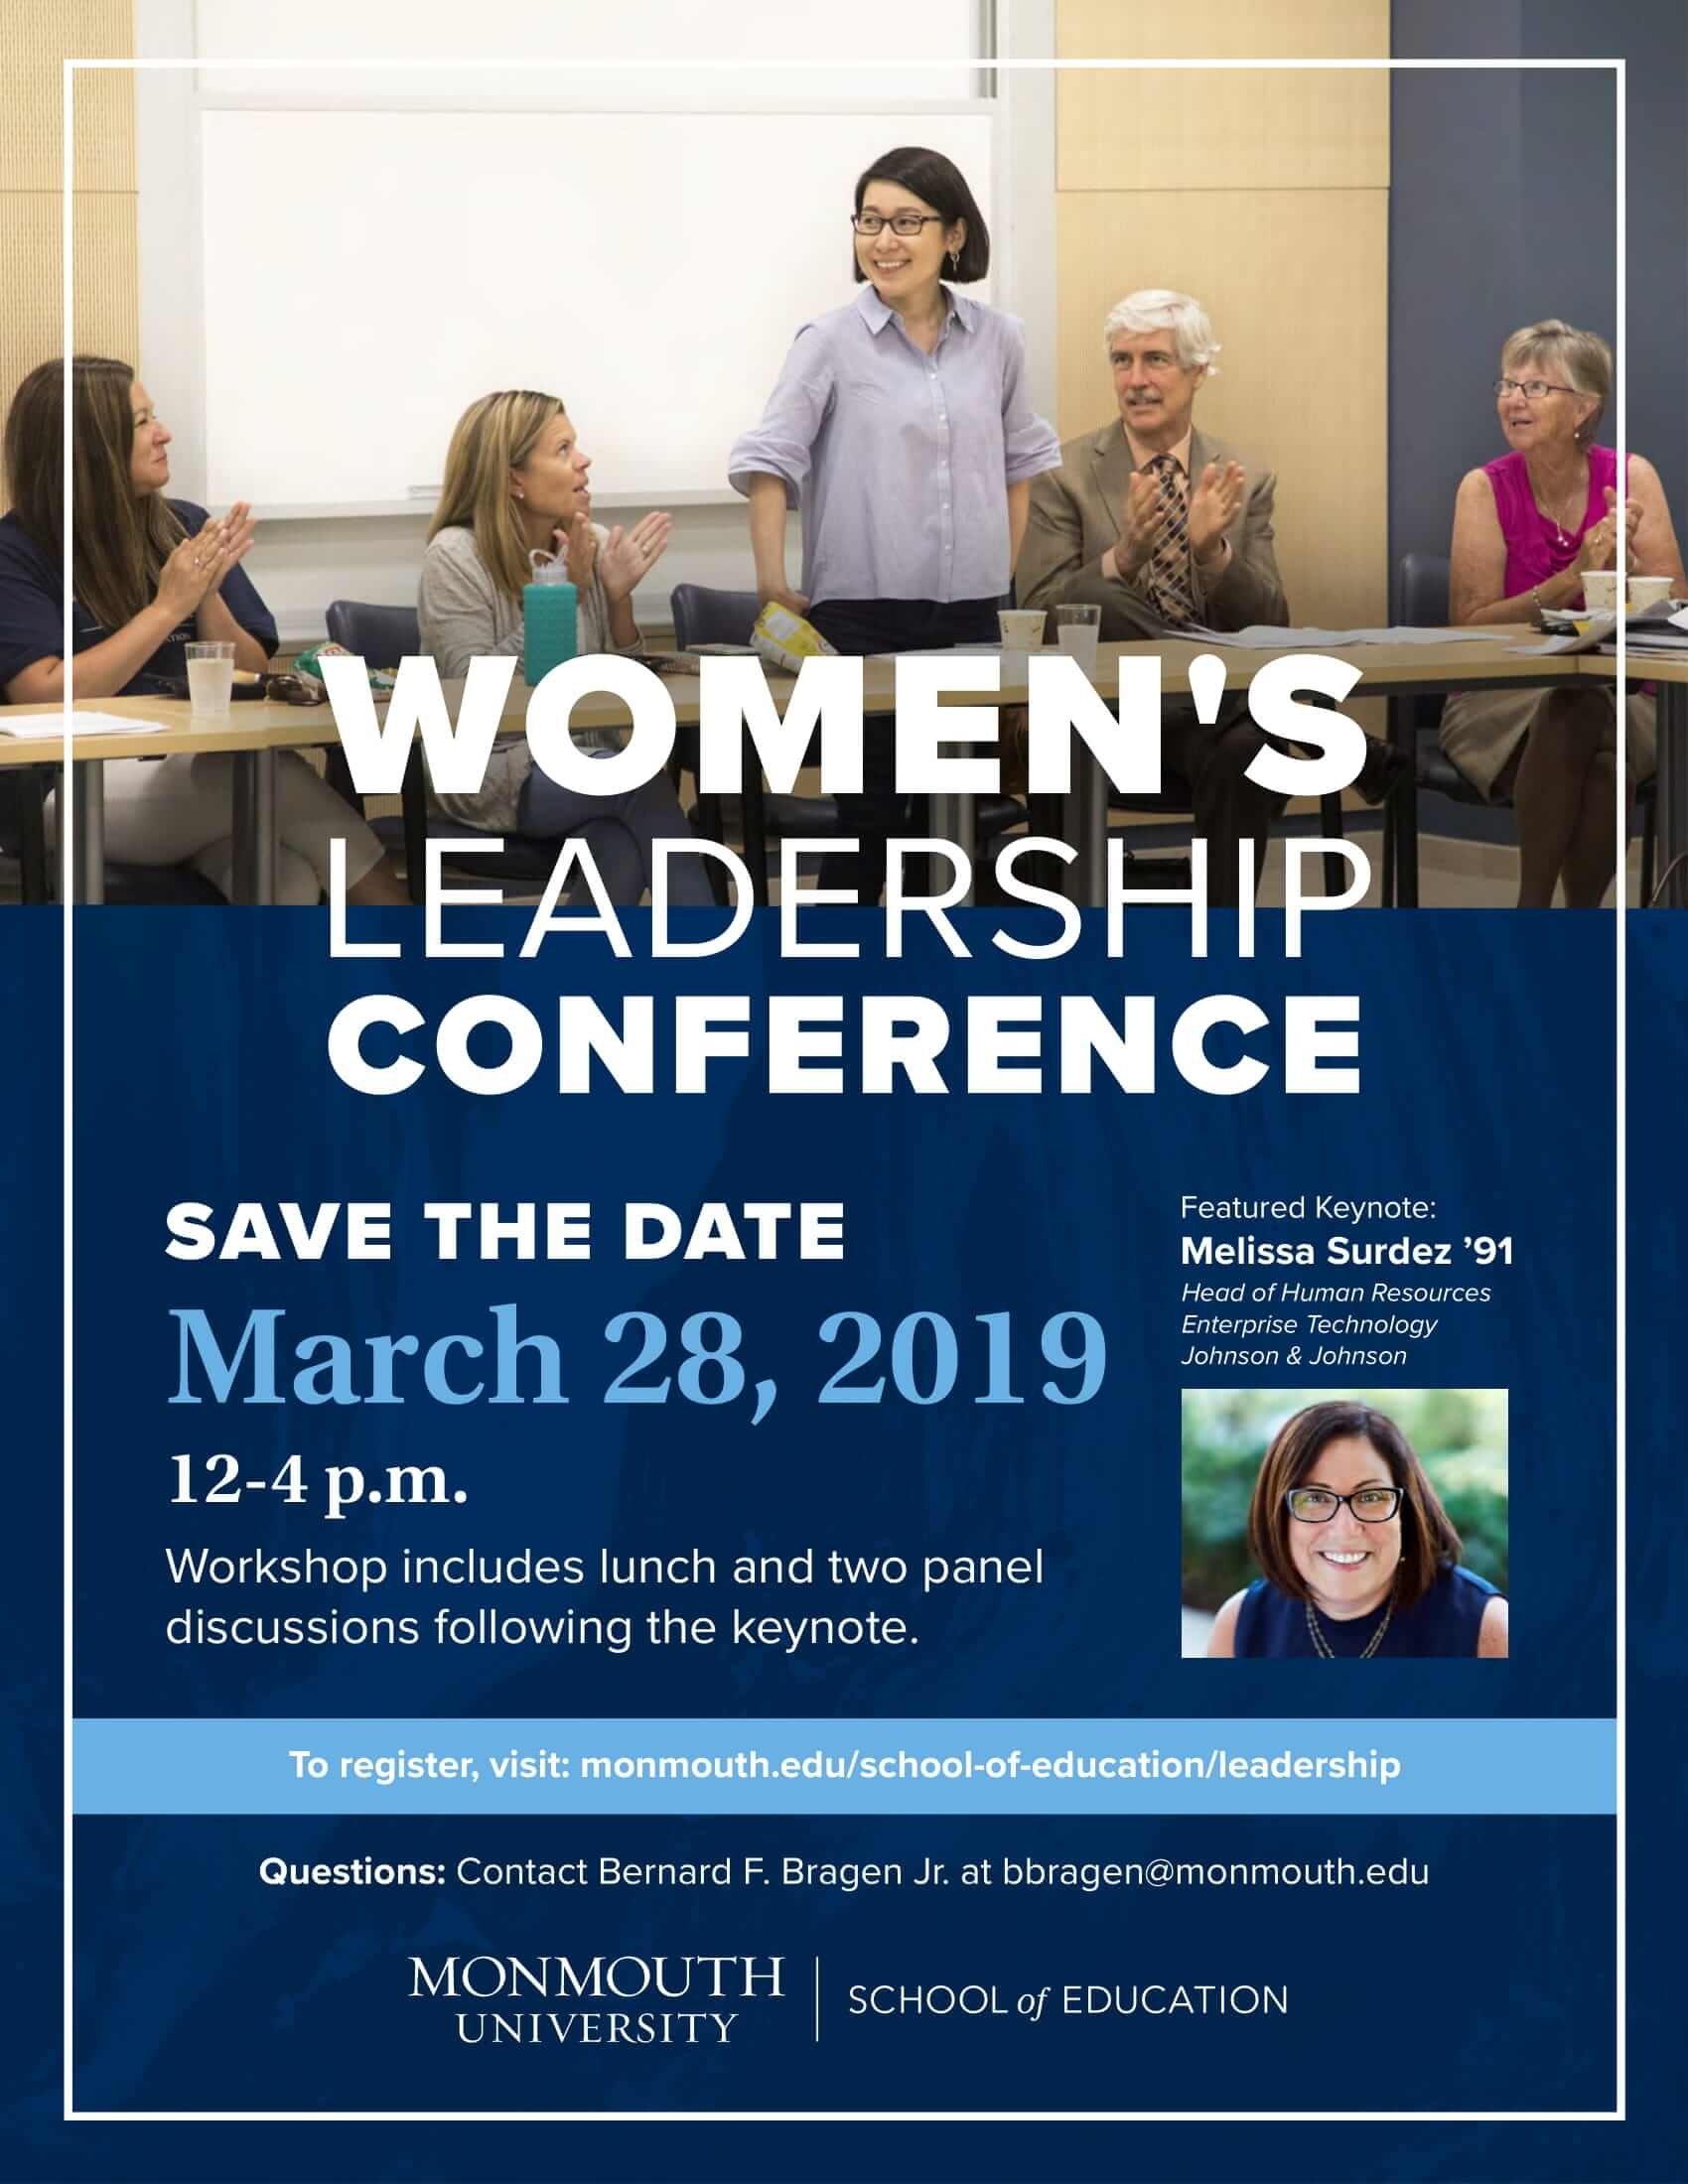 women-leadership-conference-flyer